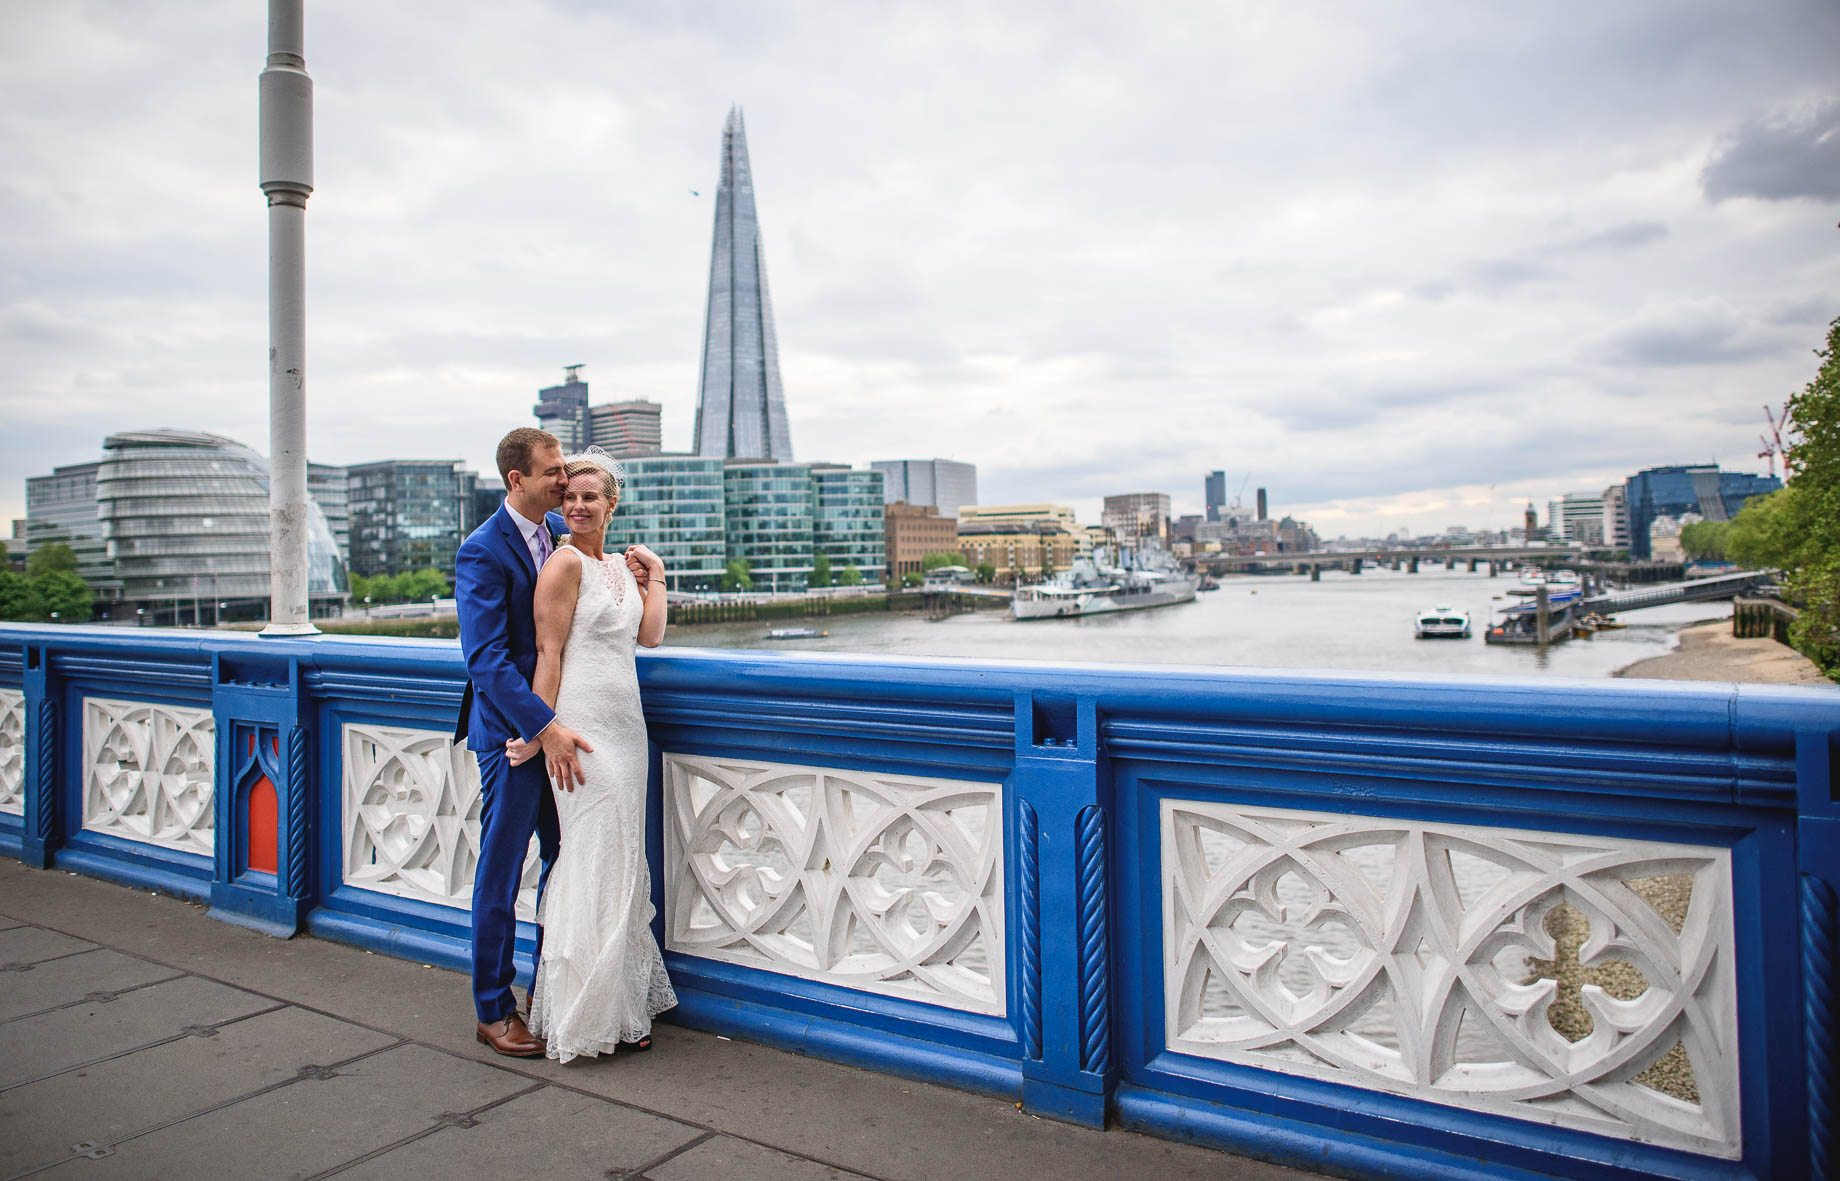 Bllomsbury House wedding photography in London - Katie and Taylor (141 of 156)